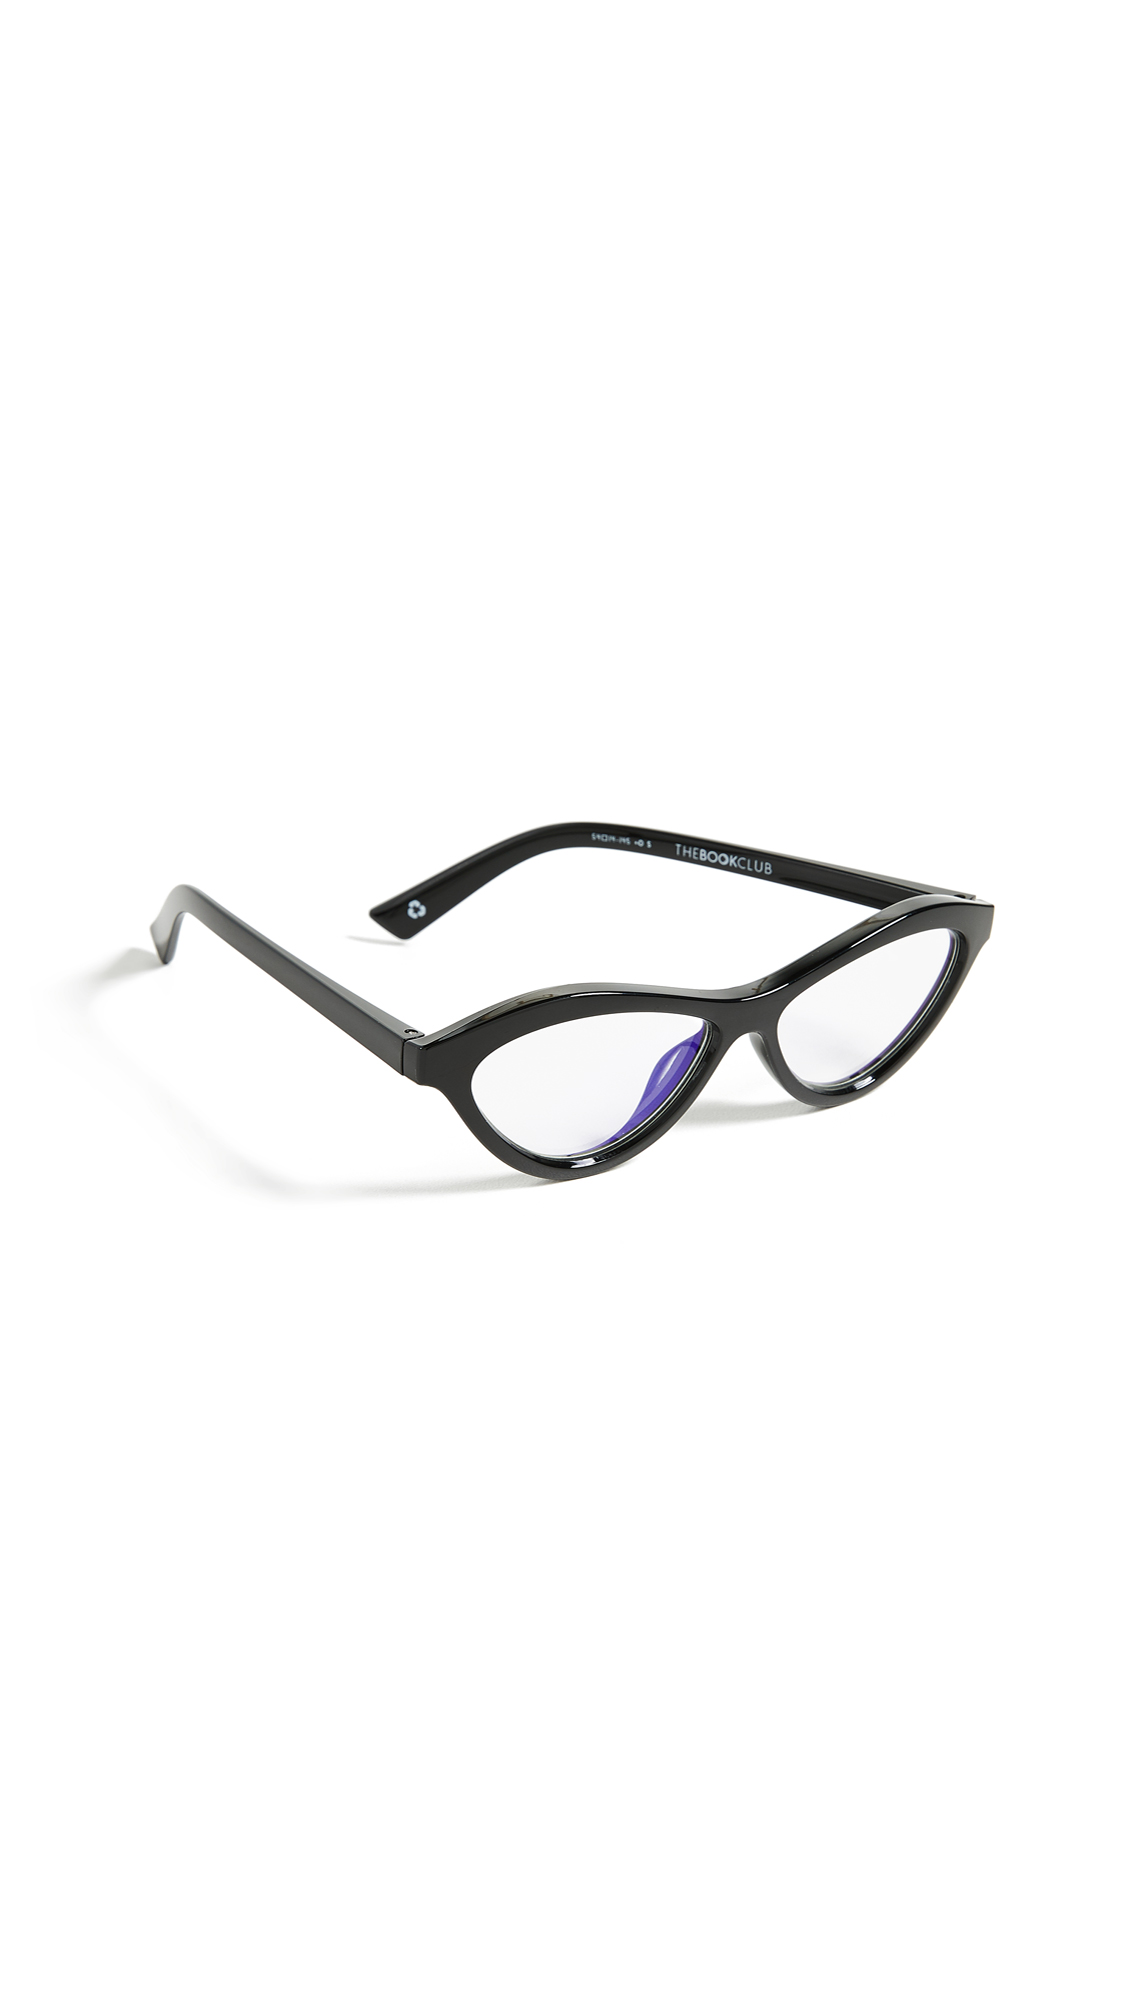 THE BOOK CLUB FIFTY FAILS A DAY READING GLASSES